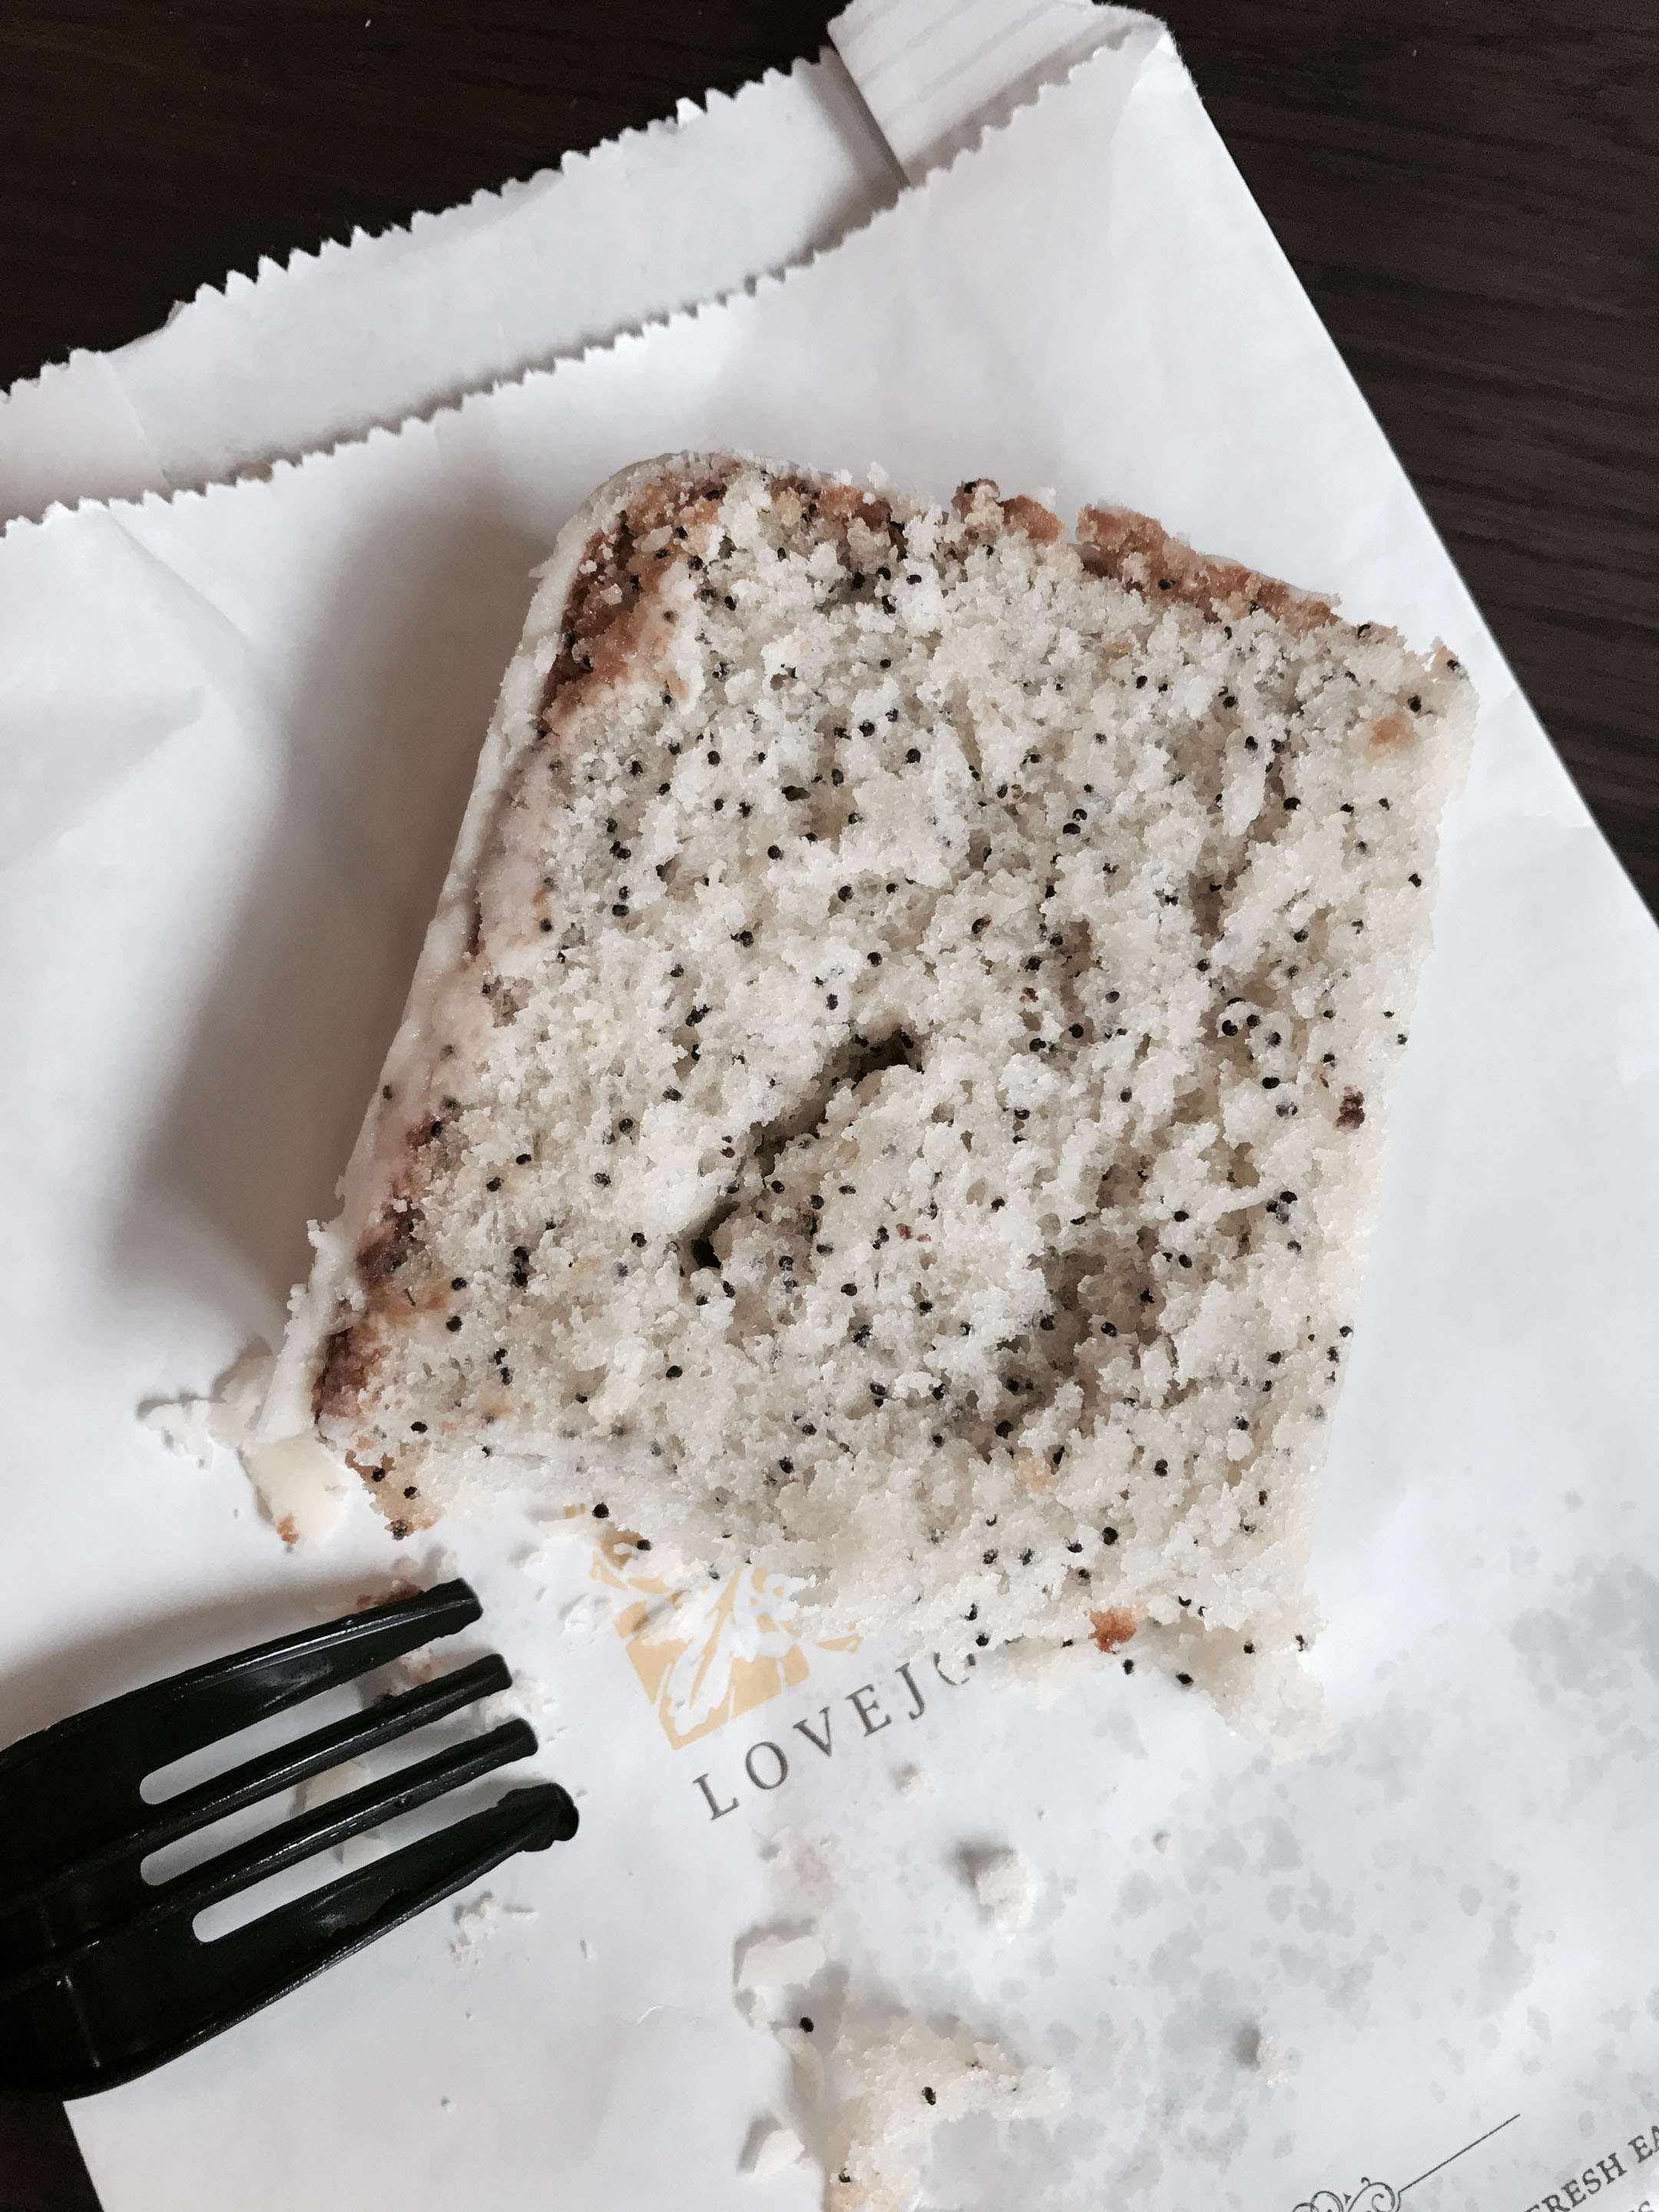 Love Joy vegan lemon poppy seed bread